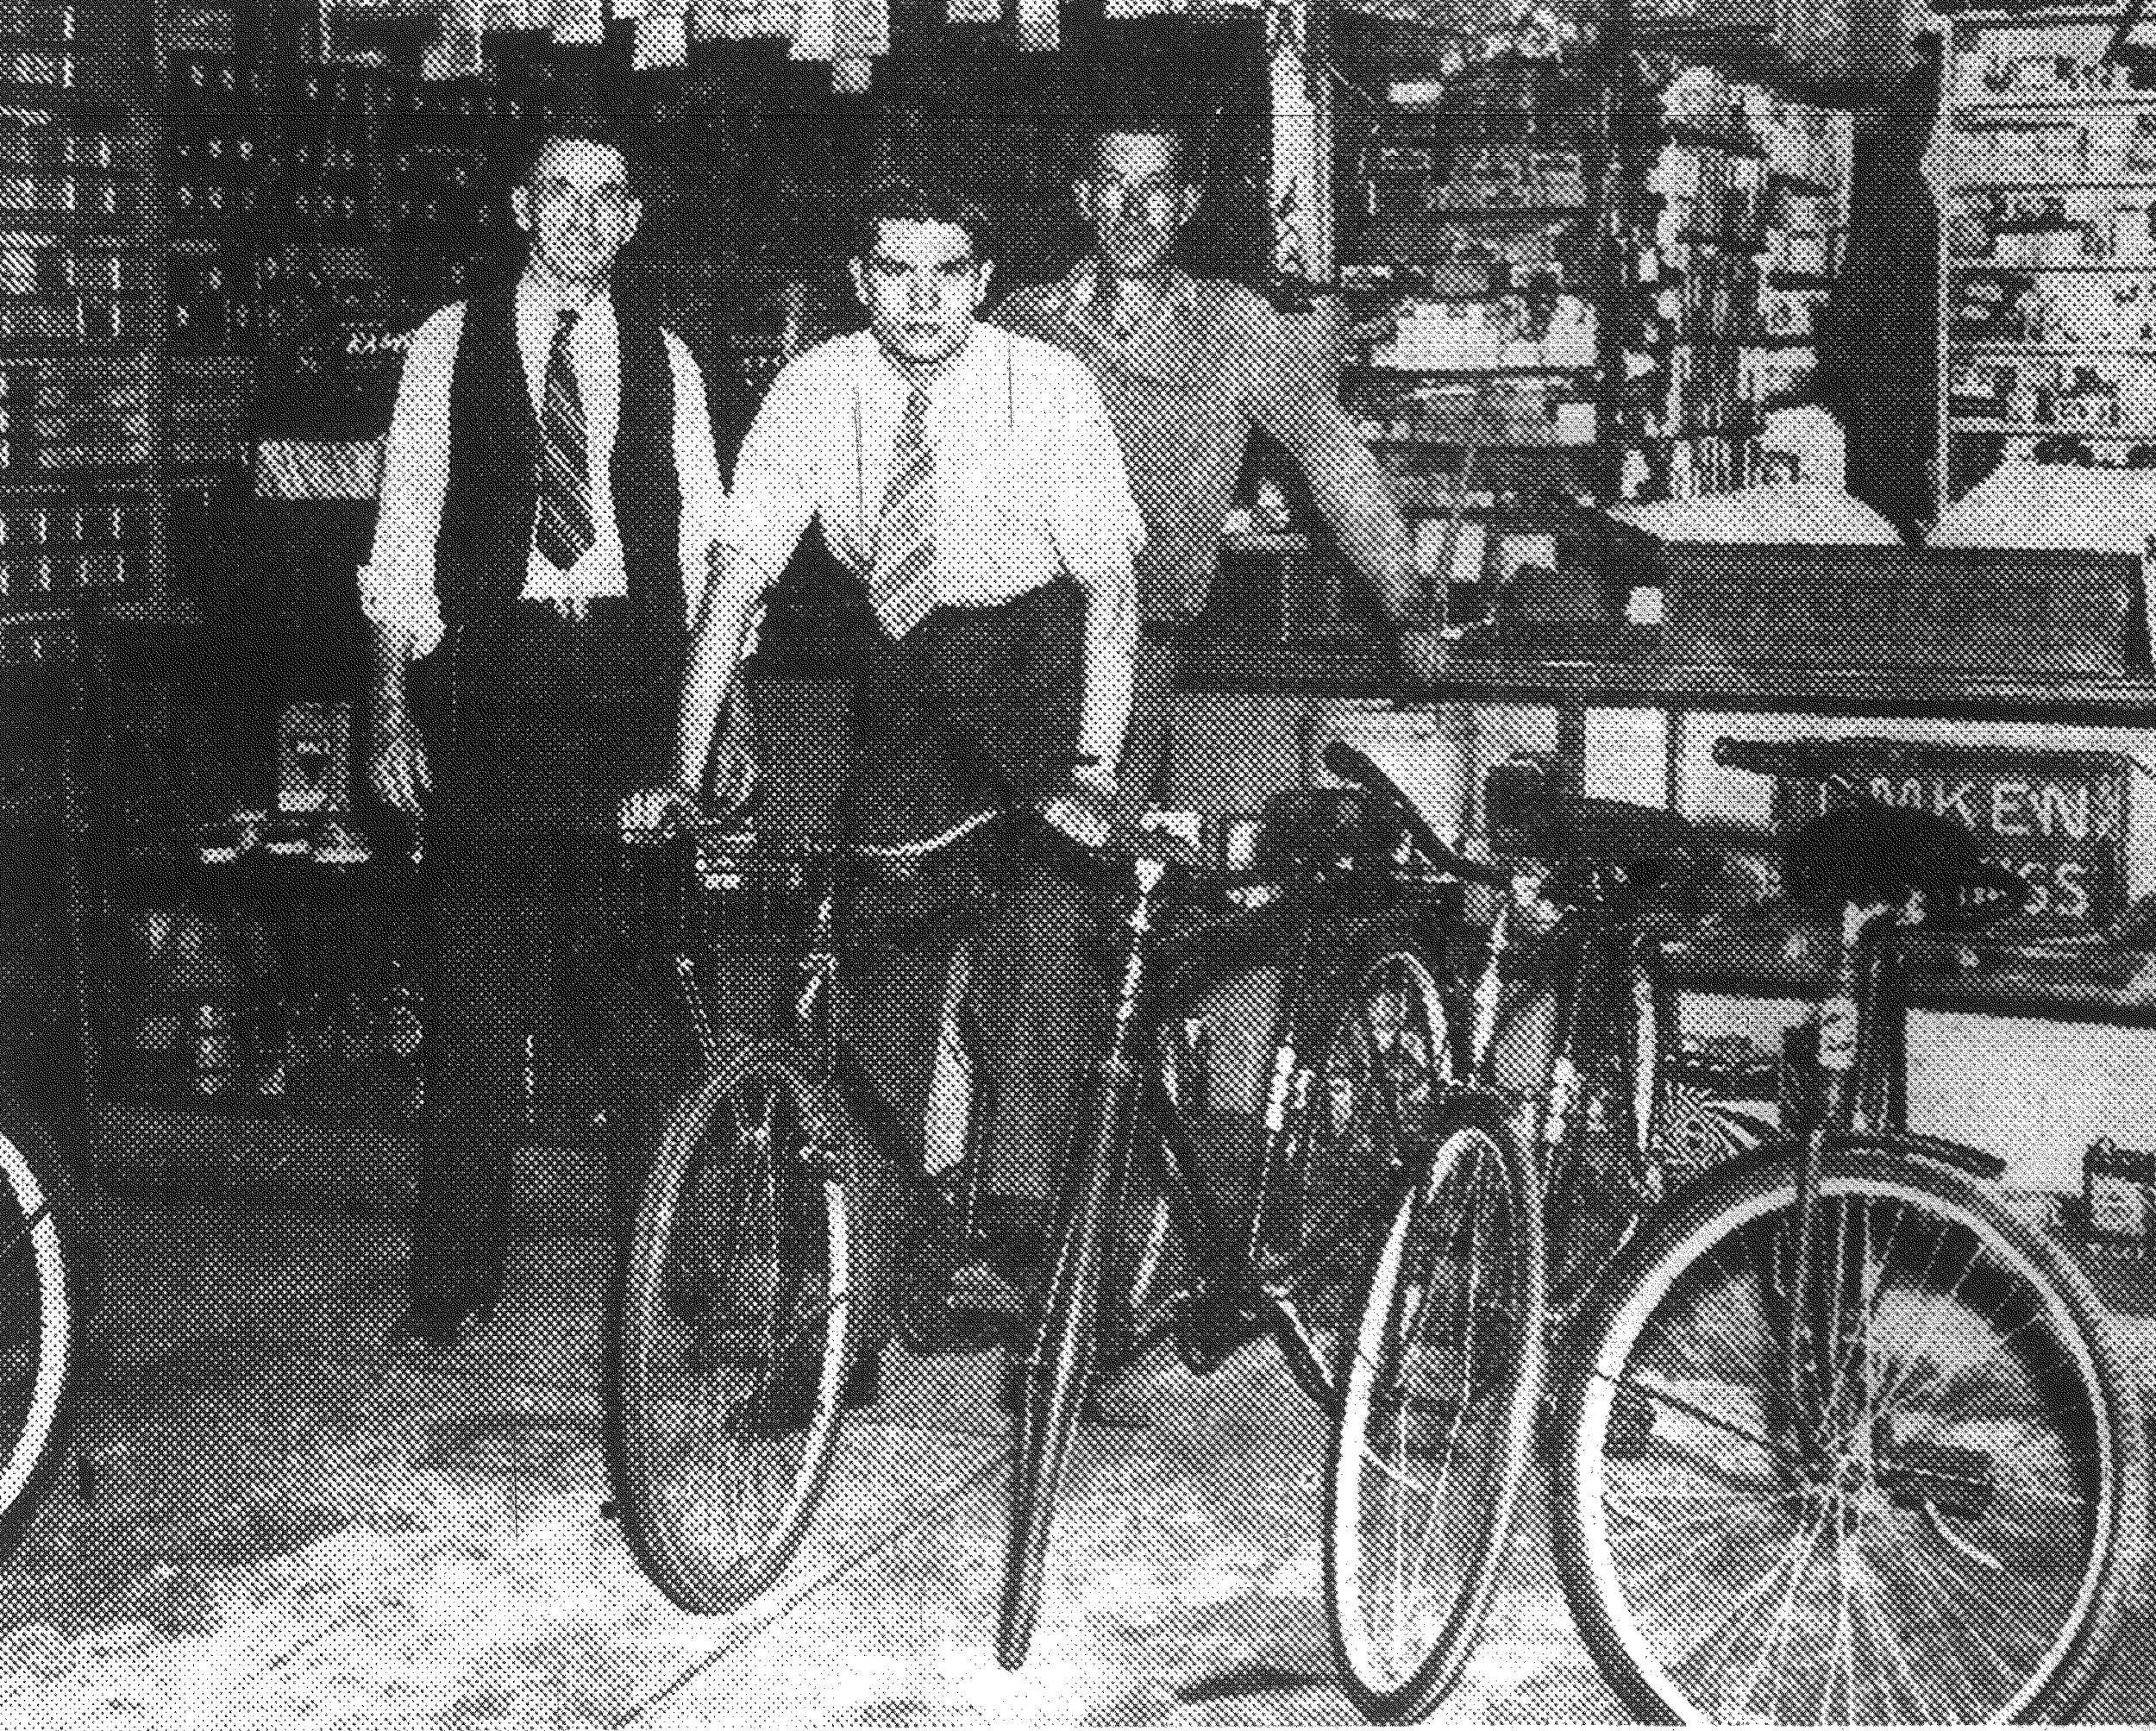 From 1943 - Pictured is Aubrey Hatfield mounted on the Victory bicycle he rode from Columbia to Sumter in three hours. At left is his father, A.J. Hatfield, owner of the bicycle and automobile accessories business that bears his name, and at right is Jim Shirer, bicycle repairman for A.J. Hatfield.